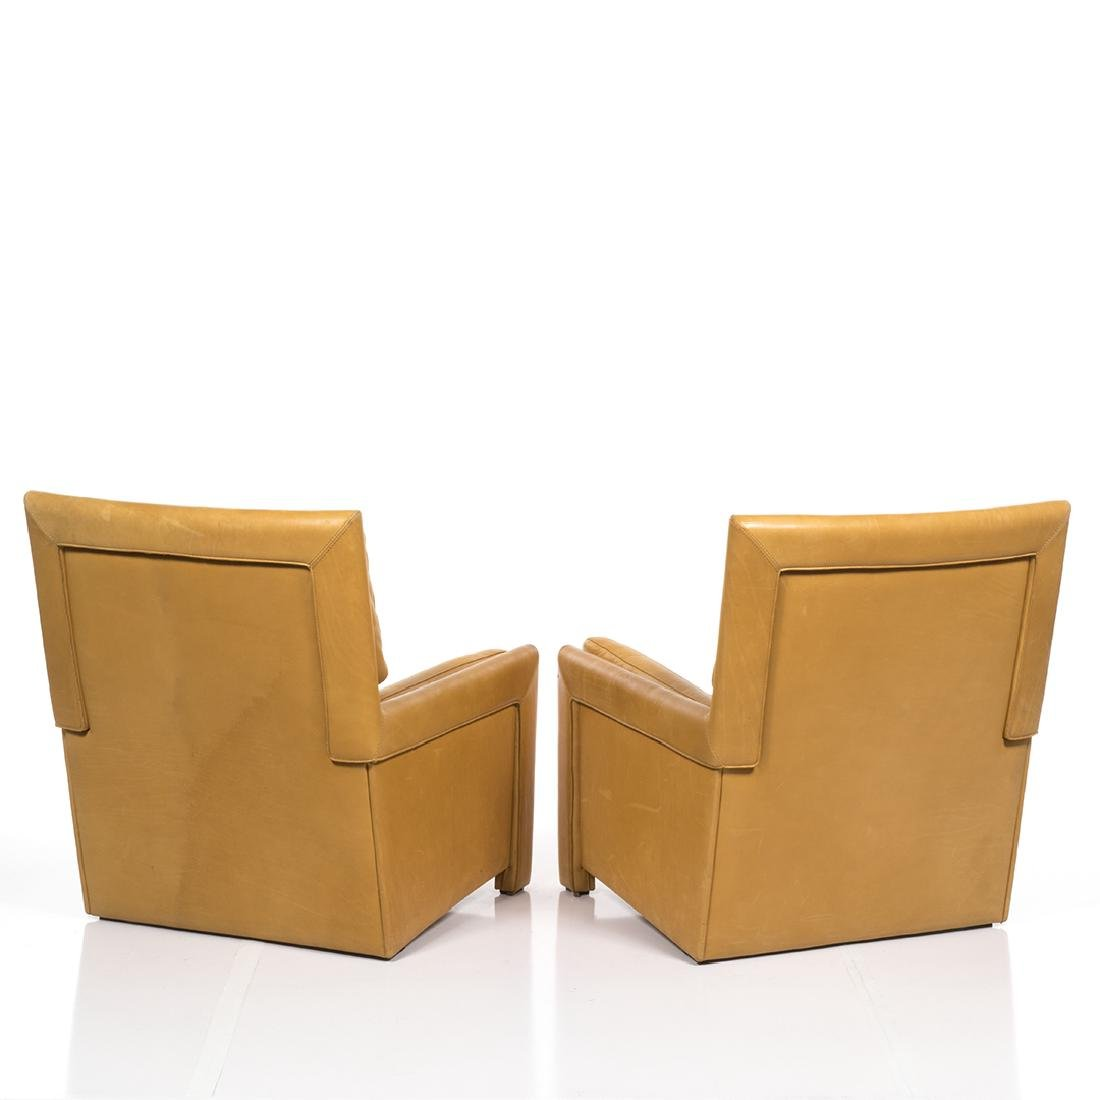 Roche Bobois Leather Club Chairs (2) - 3